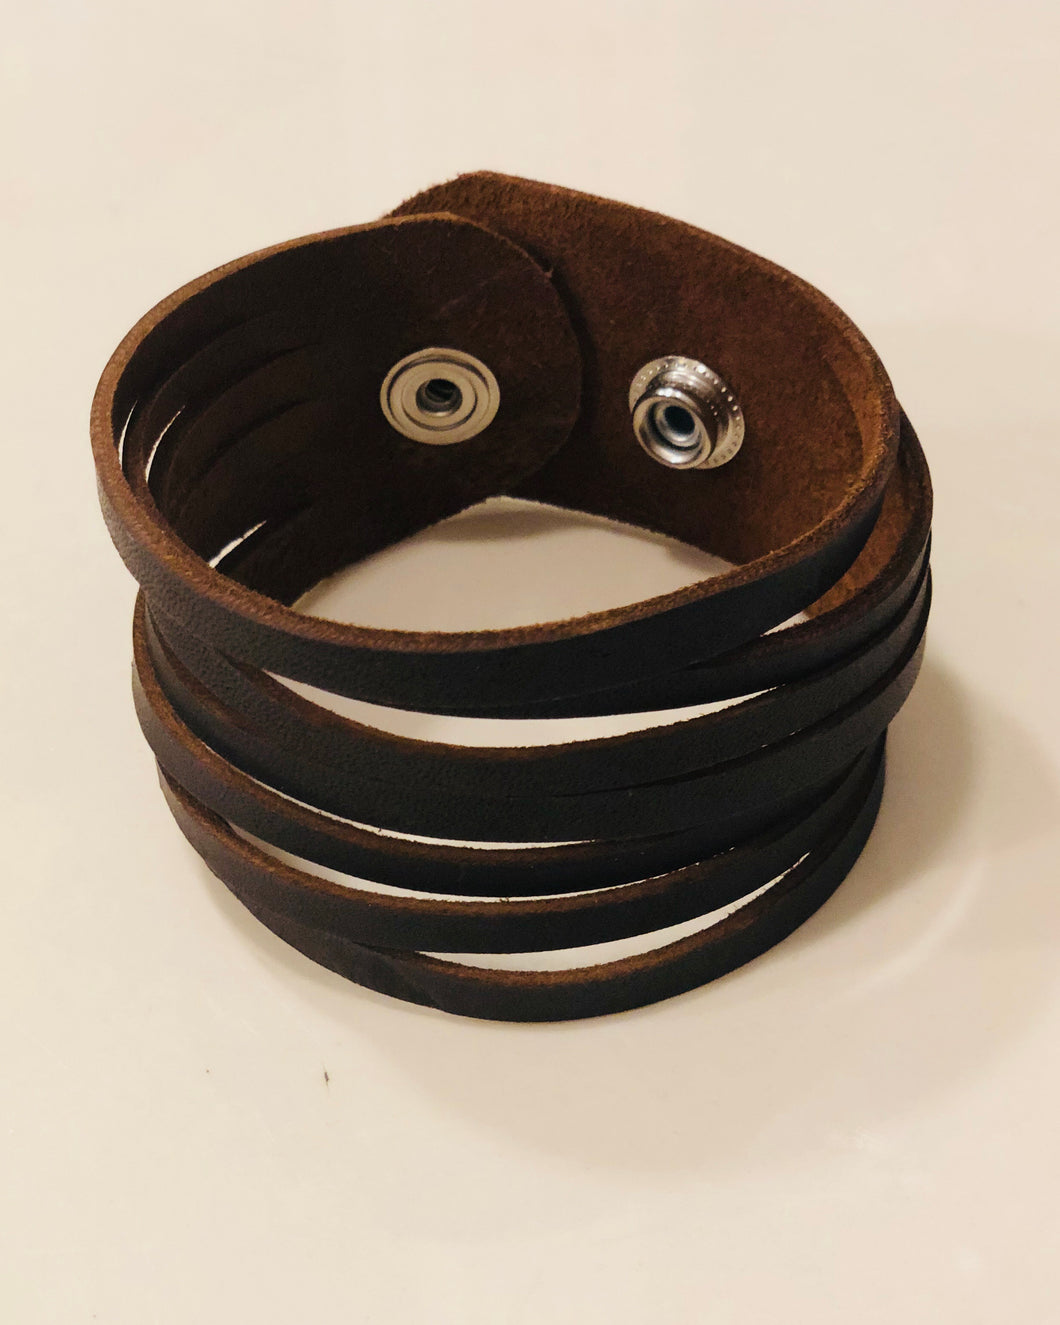 Leather Cuff With Slits - King George Shop